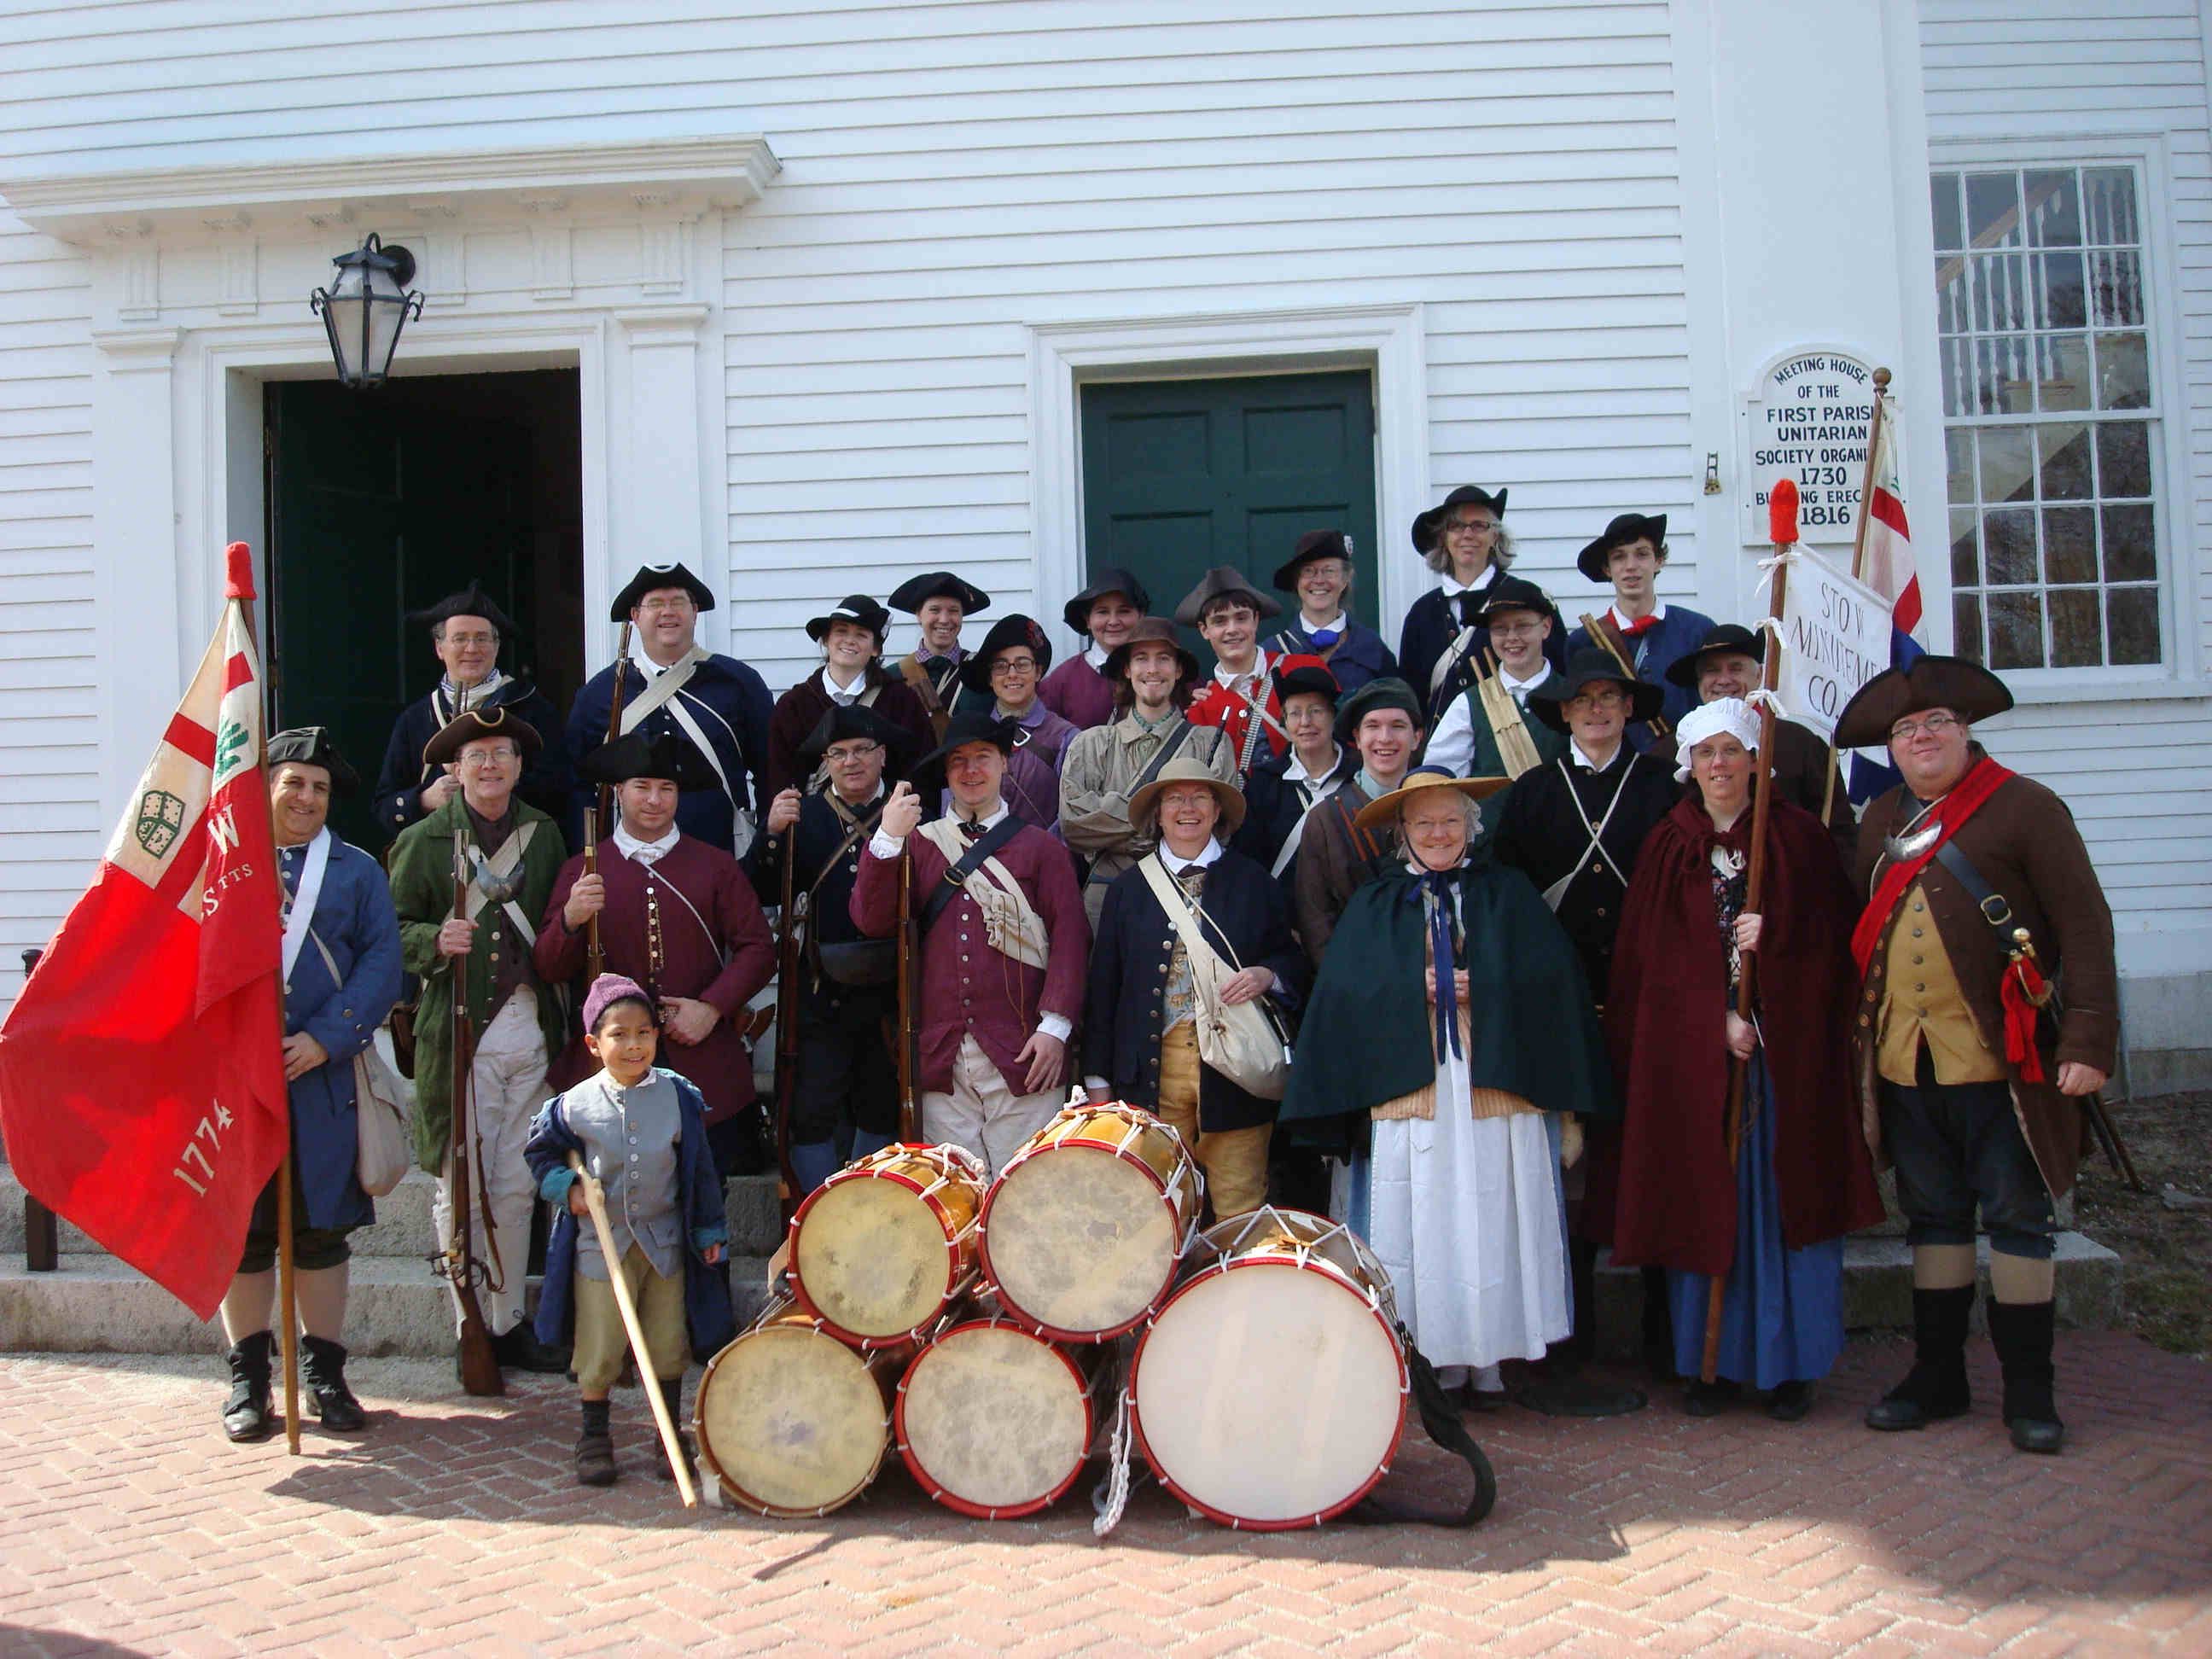 2011 Stow Minutemen (with friends from Charlestown) at Bedford Polecapping